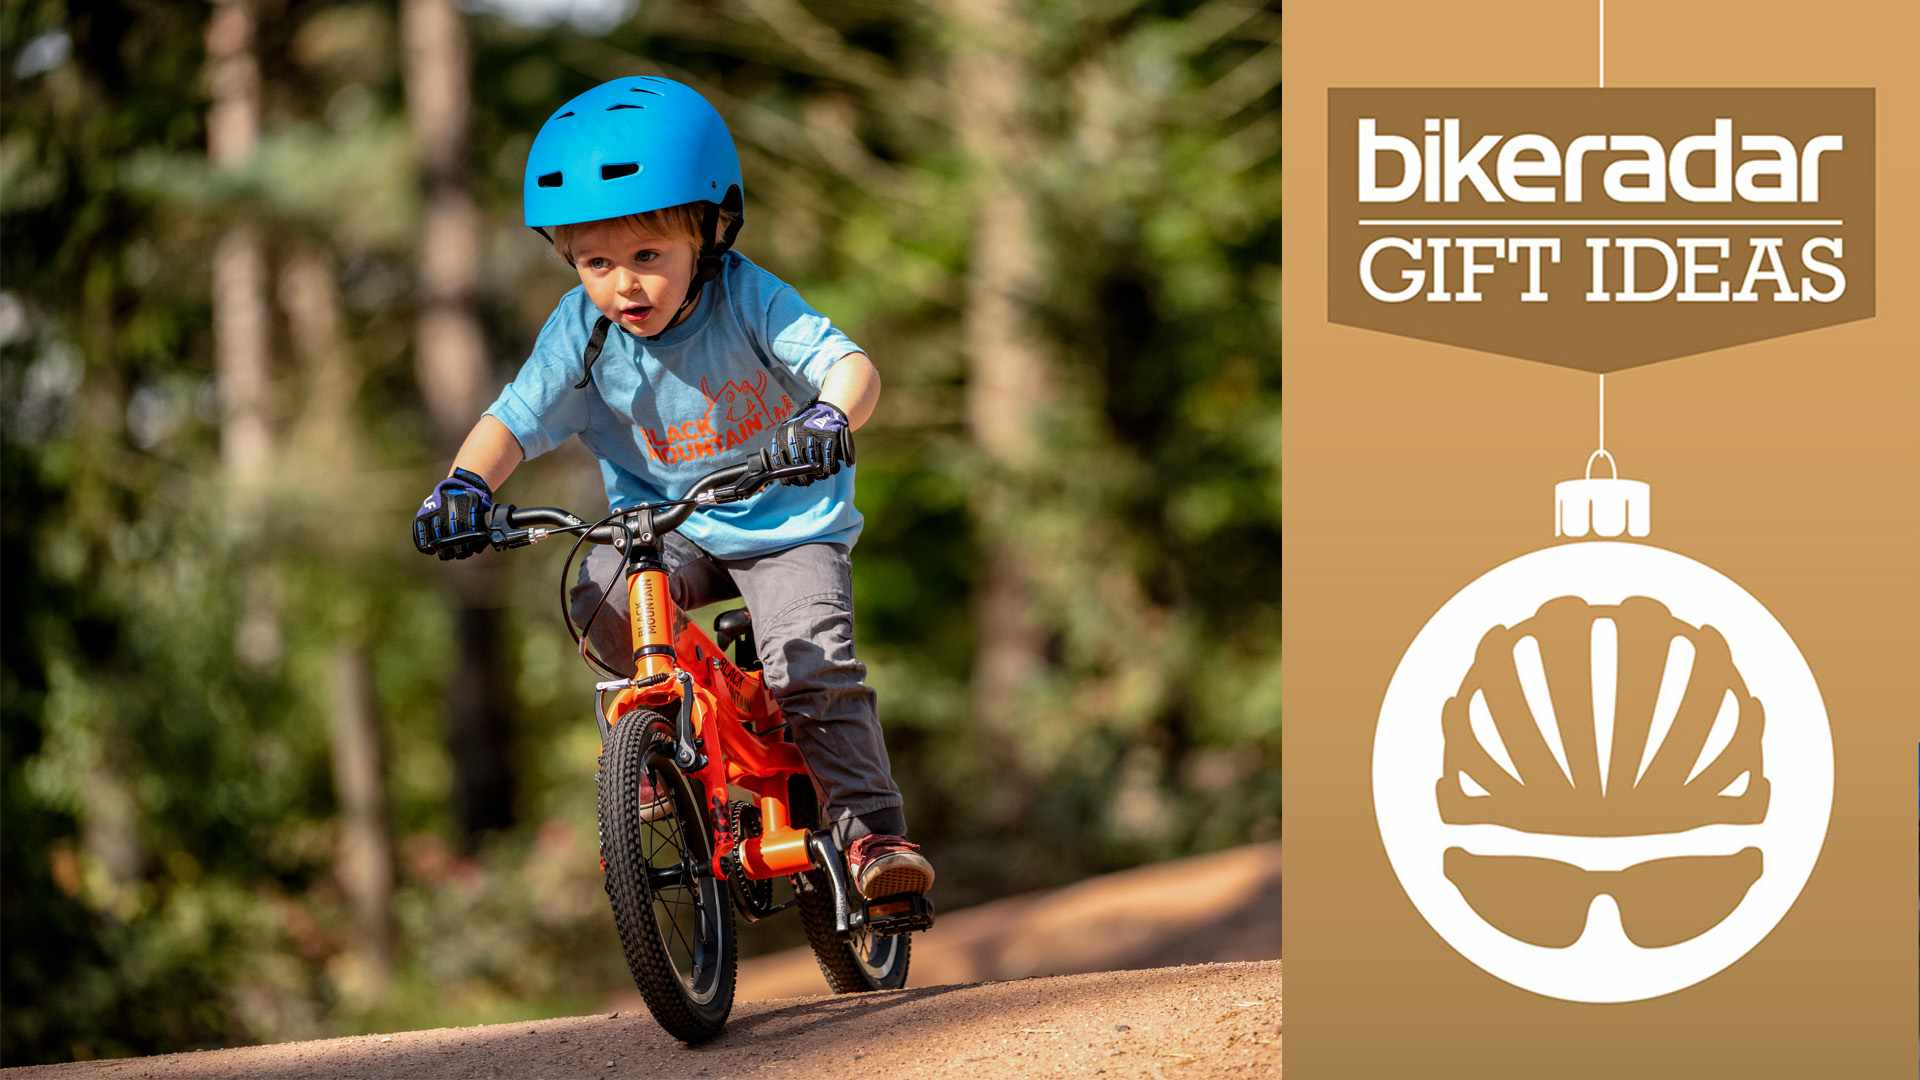 There's no better Christmas present for a kid than a bicycle